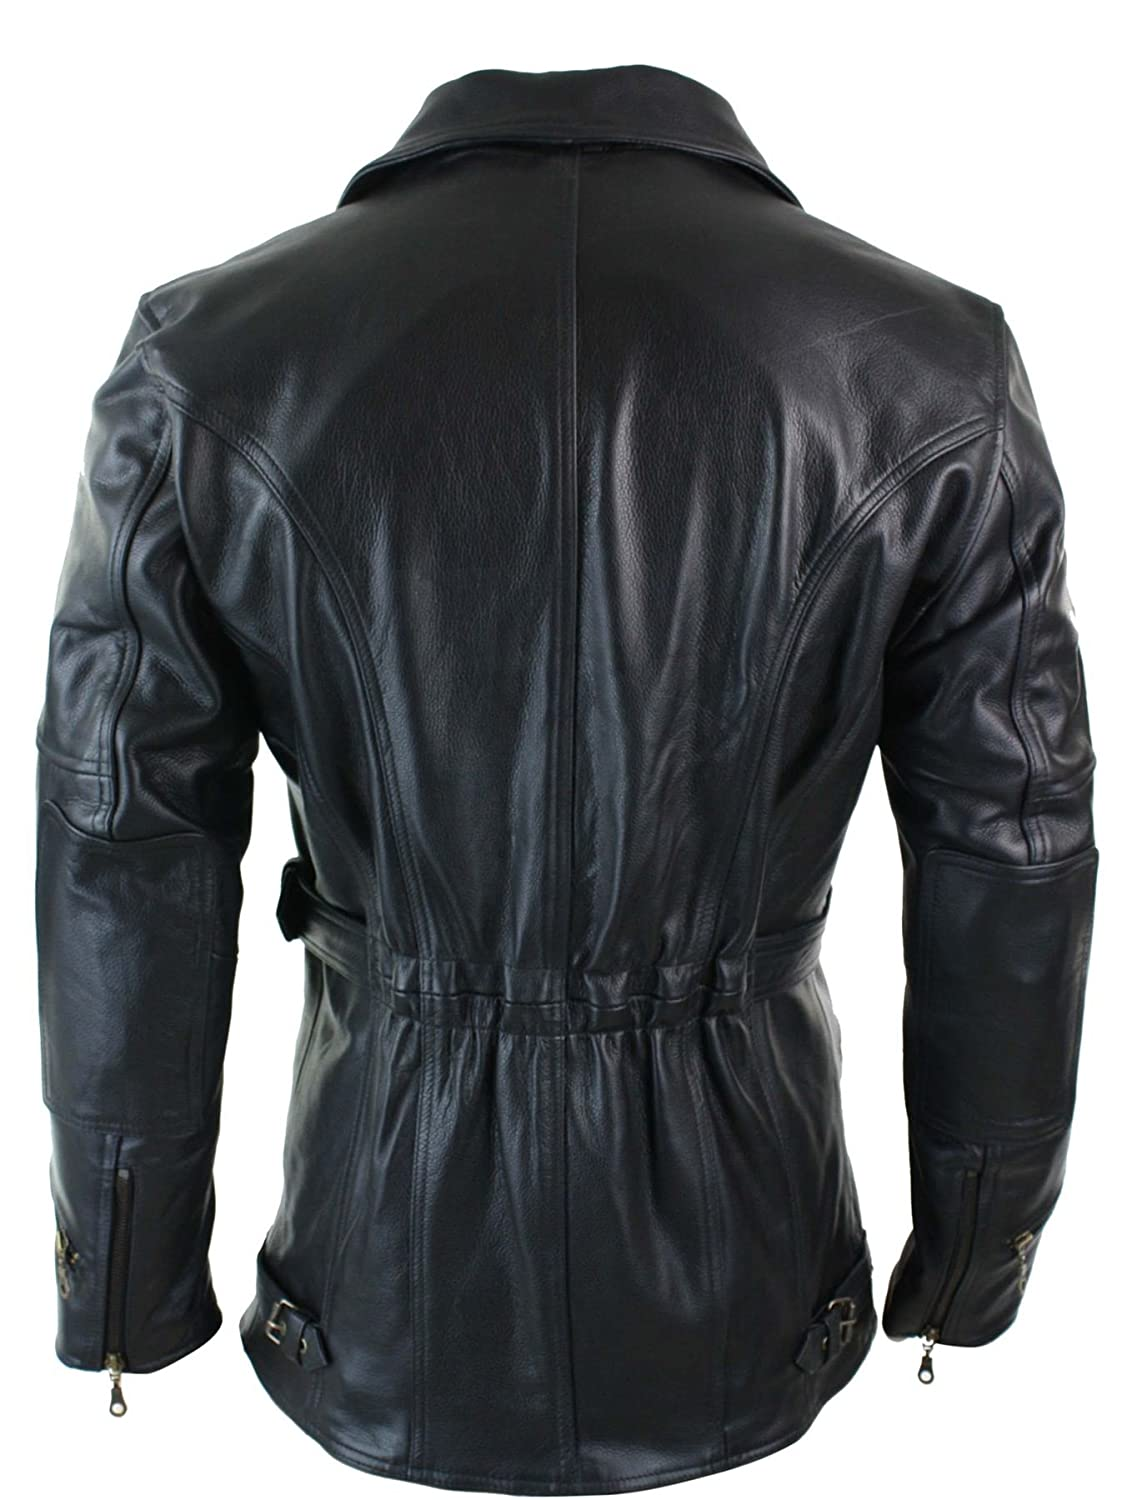 7520c9b18fd Mens Cross Zip Belted Black 3 4 Motorcycle Biker Long Leather Jacket CE  Armour  Amazon.co.uk  Clothing